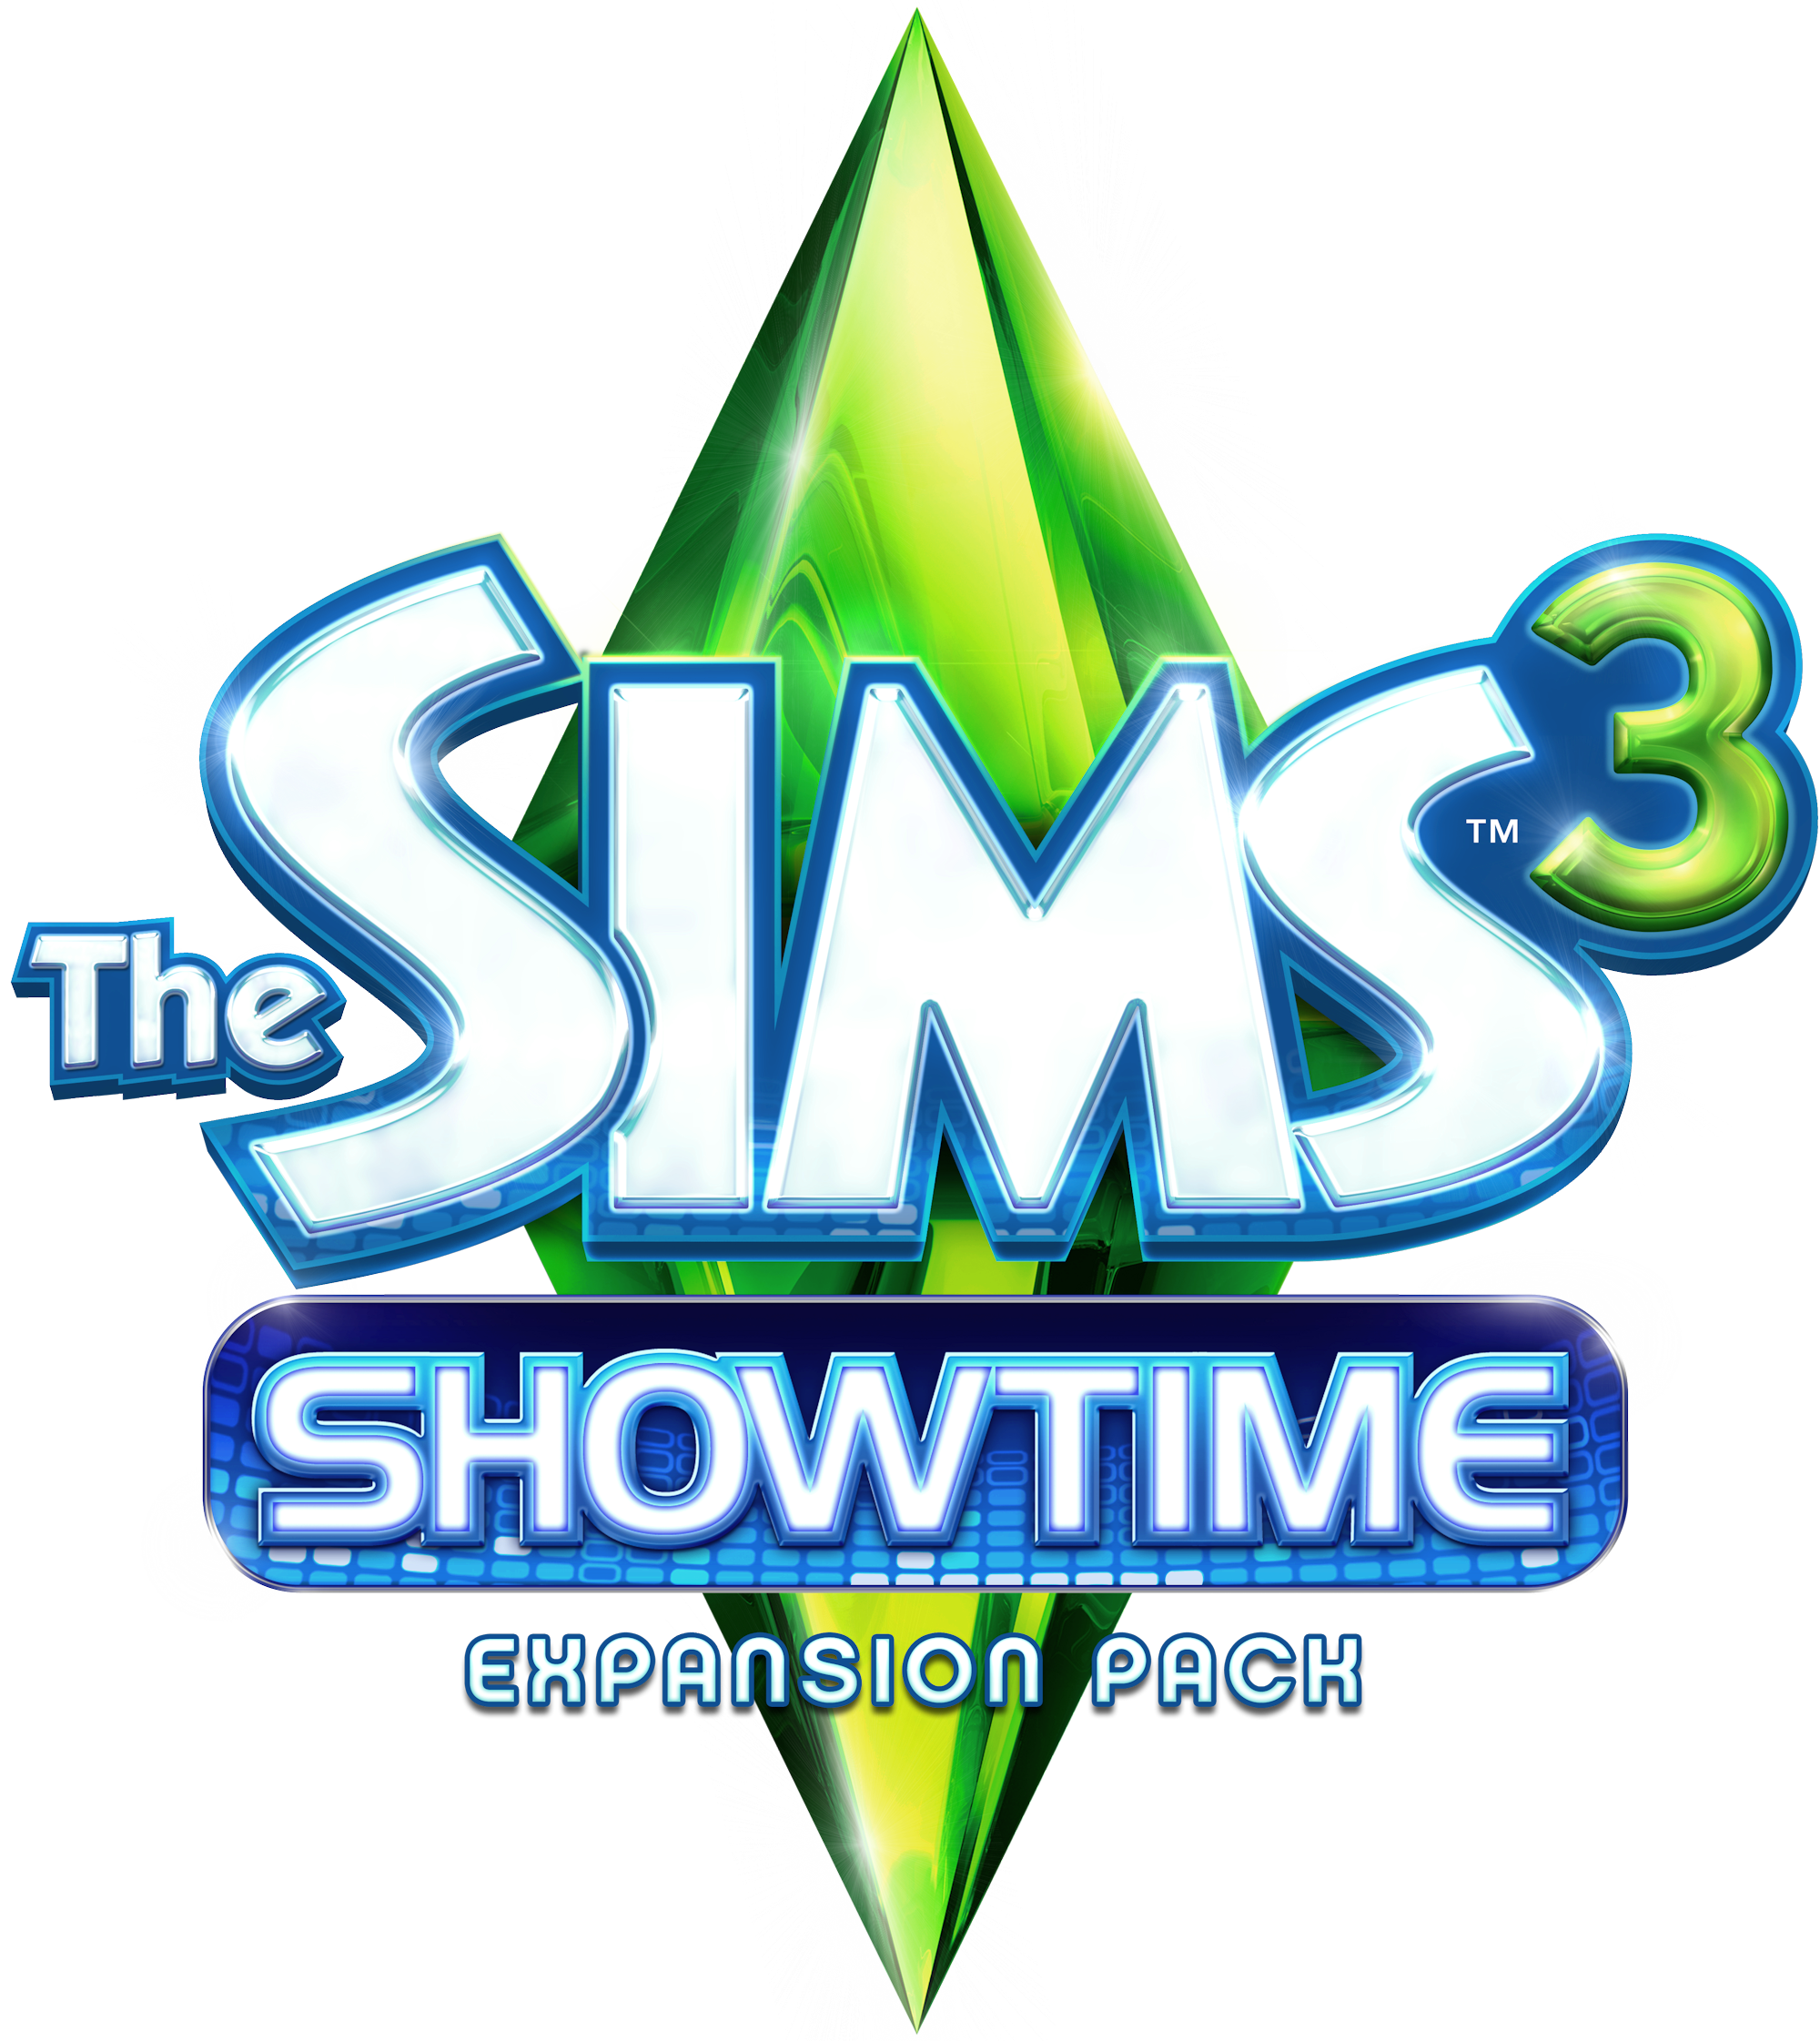 Sims 3 logo png. Image the showtime logopedia